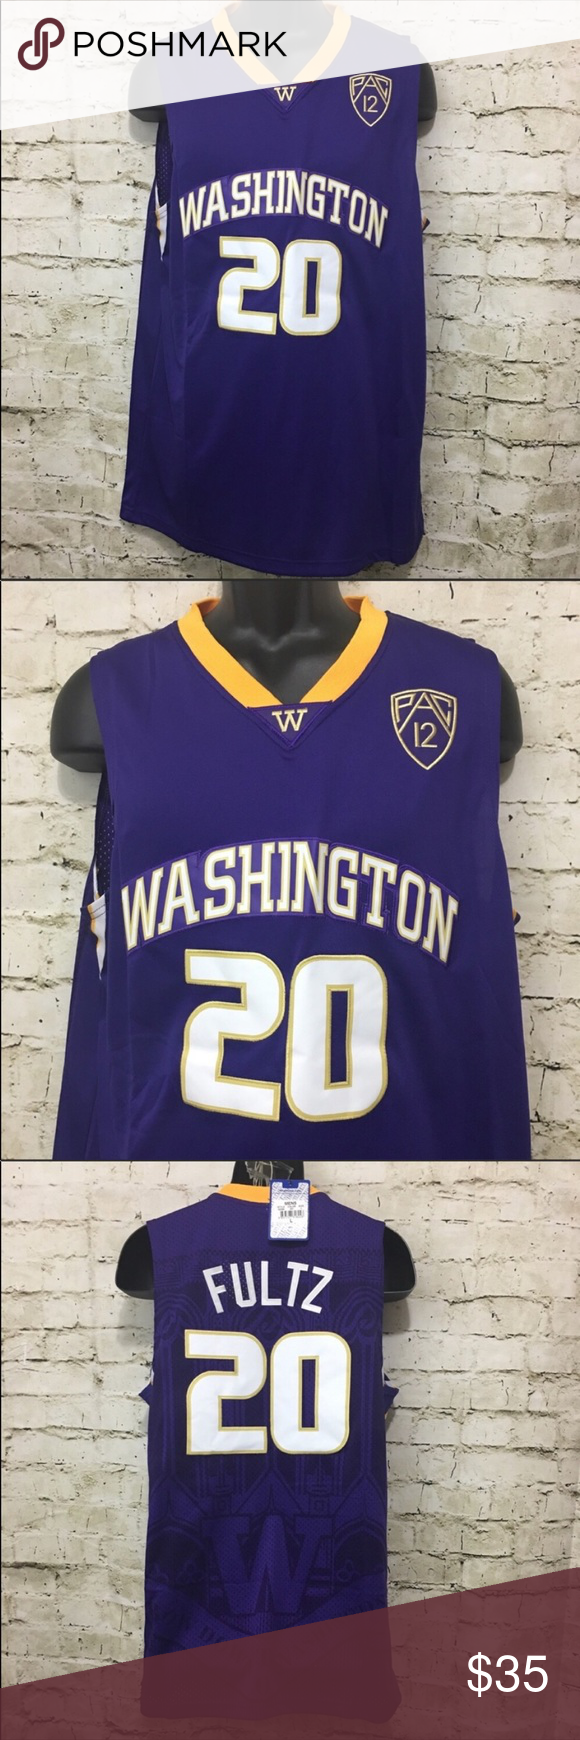 ef860b17af84e Markelle Fultz  20 Huskies Throwback Jersey Size M This is a New With Tags  NBA Brand NCAA PAC 12 Basketball Washington Huskies  20 Markelle Fultz  Purple ...